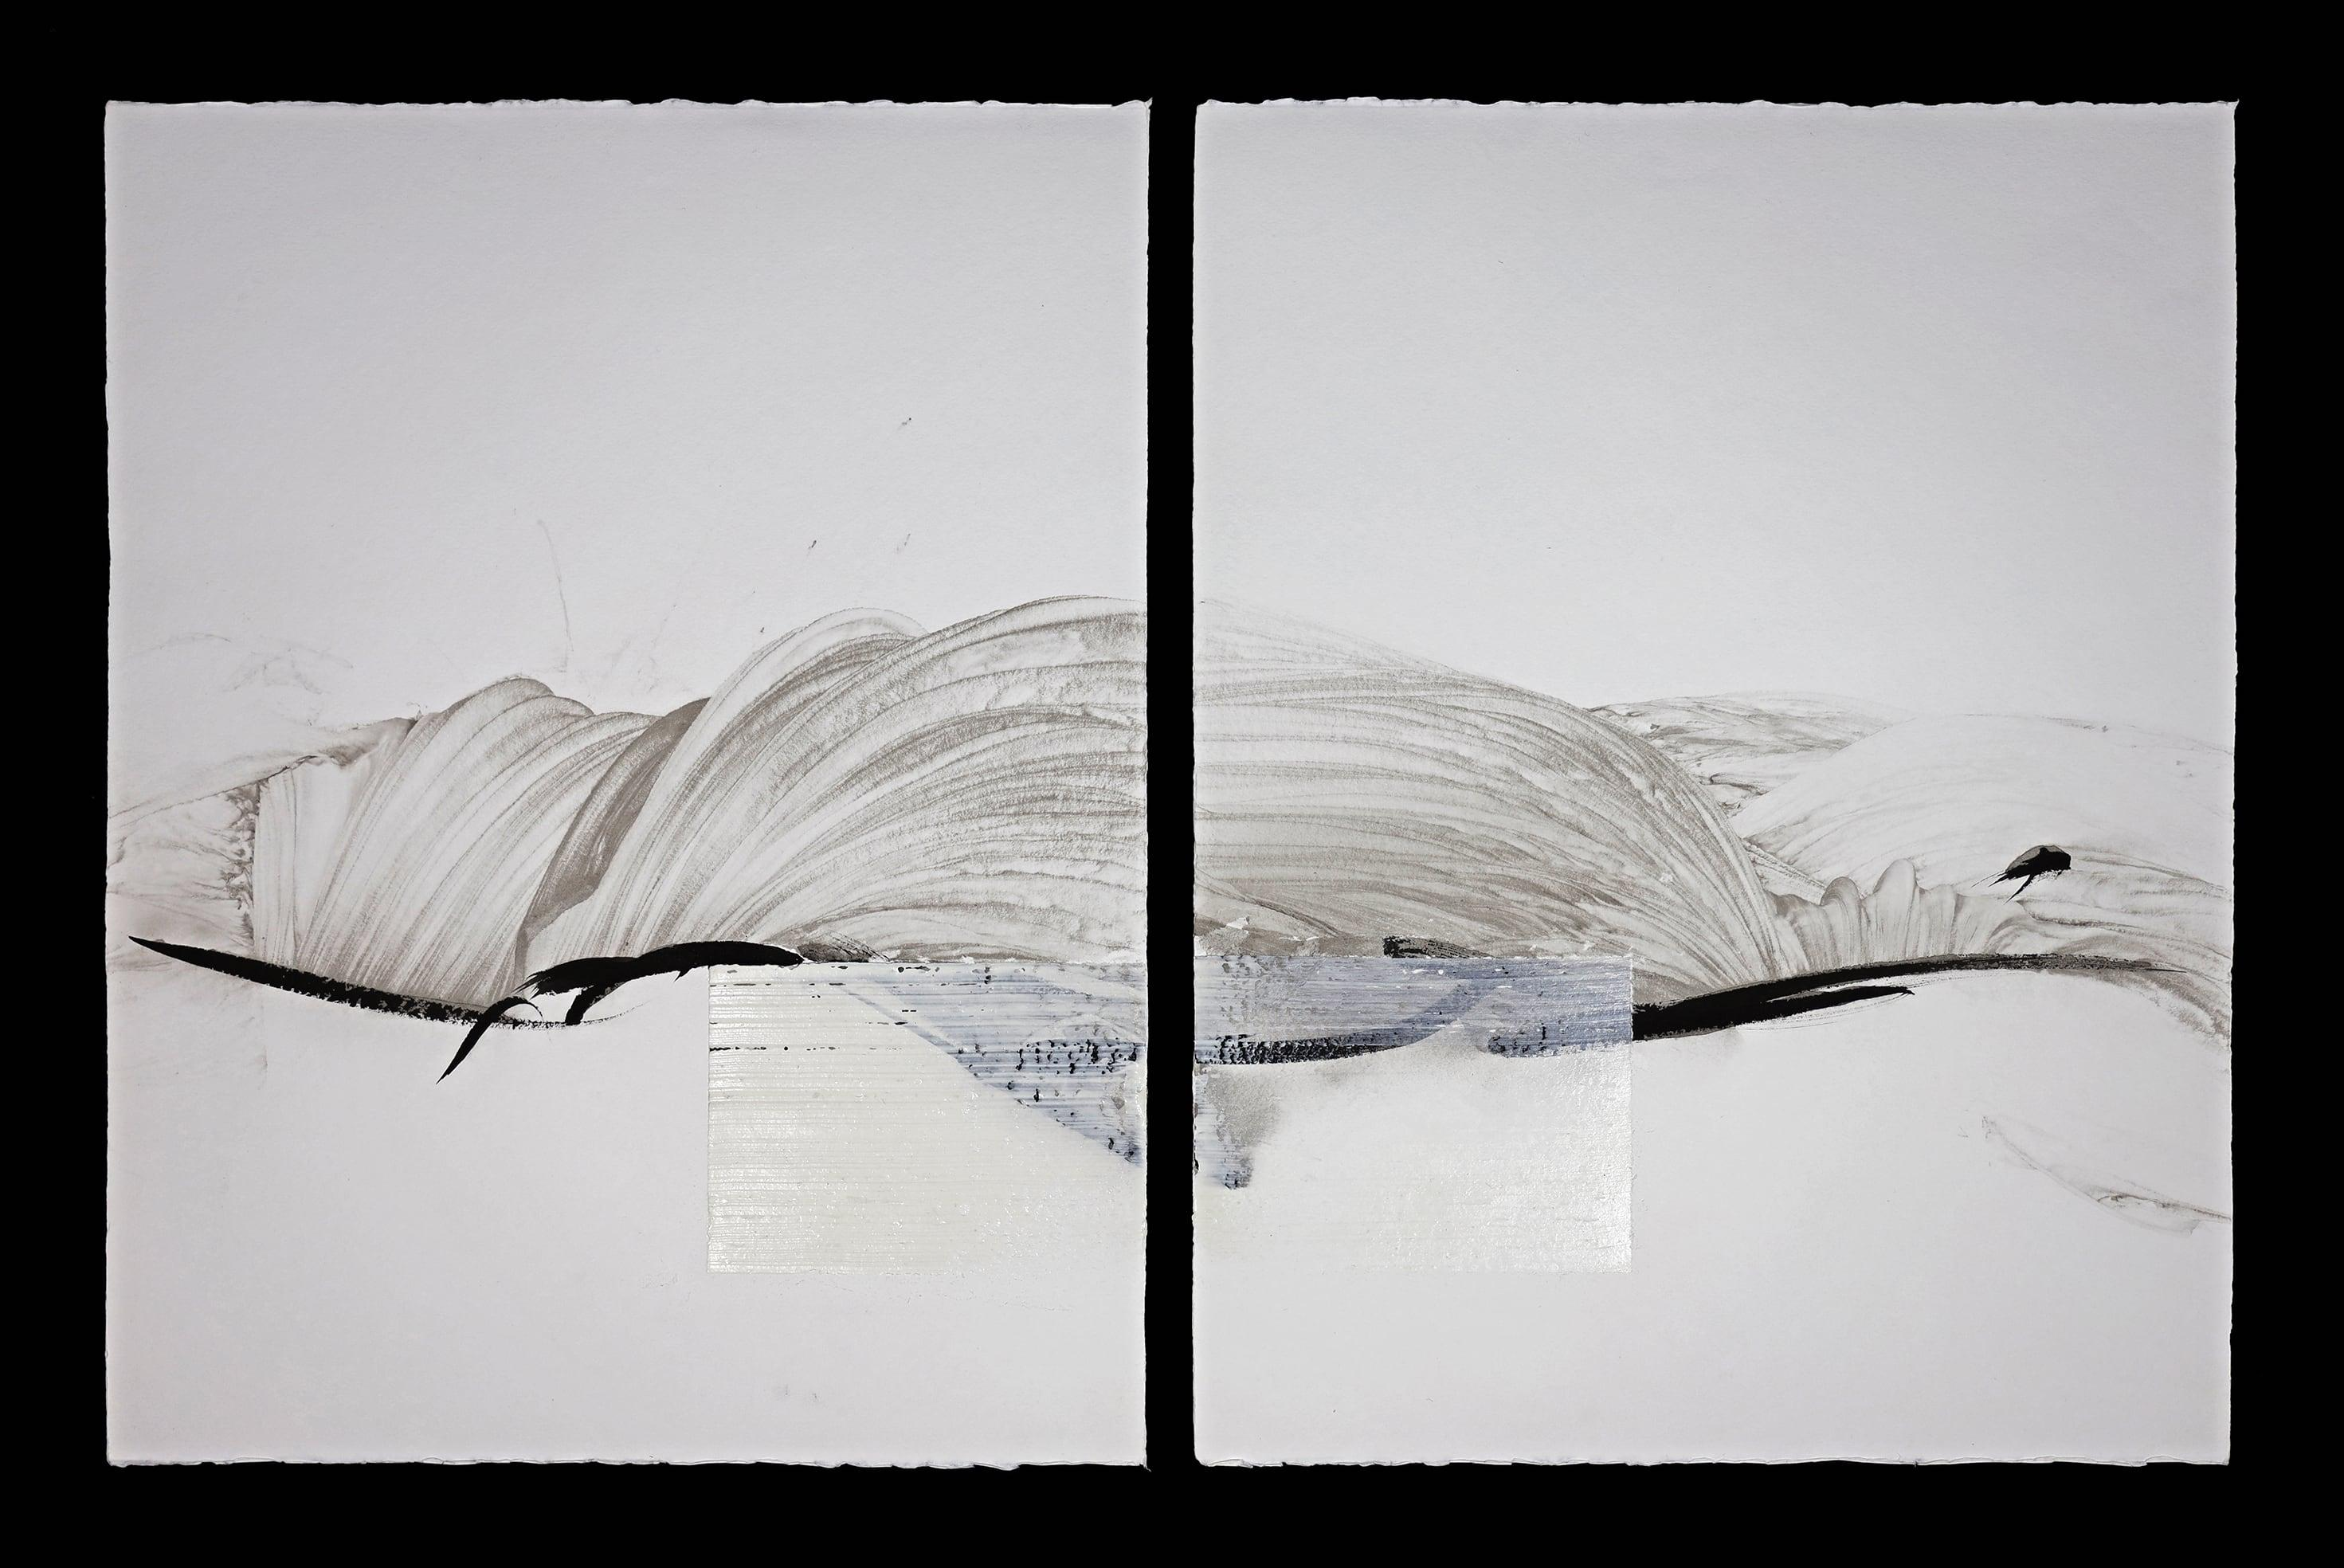 Permanescence N496-D - Calligraphy-based abstract work on paper